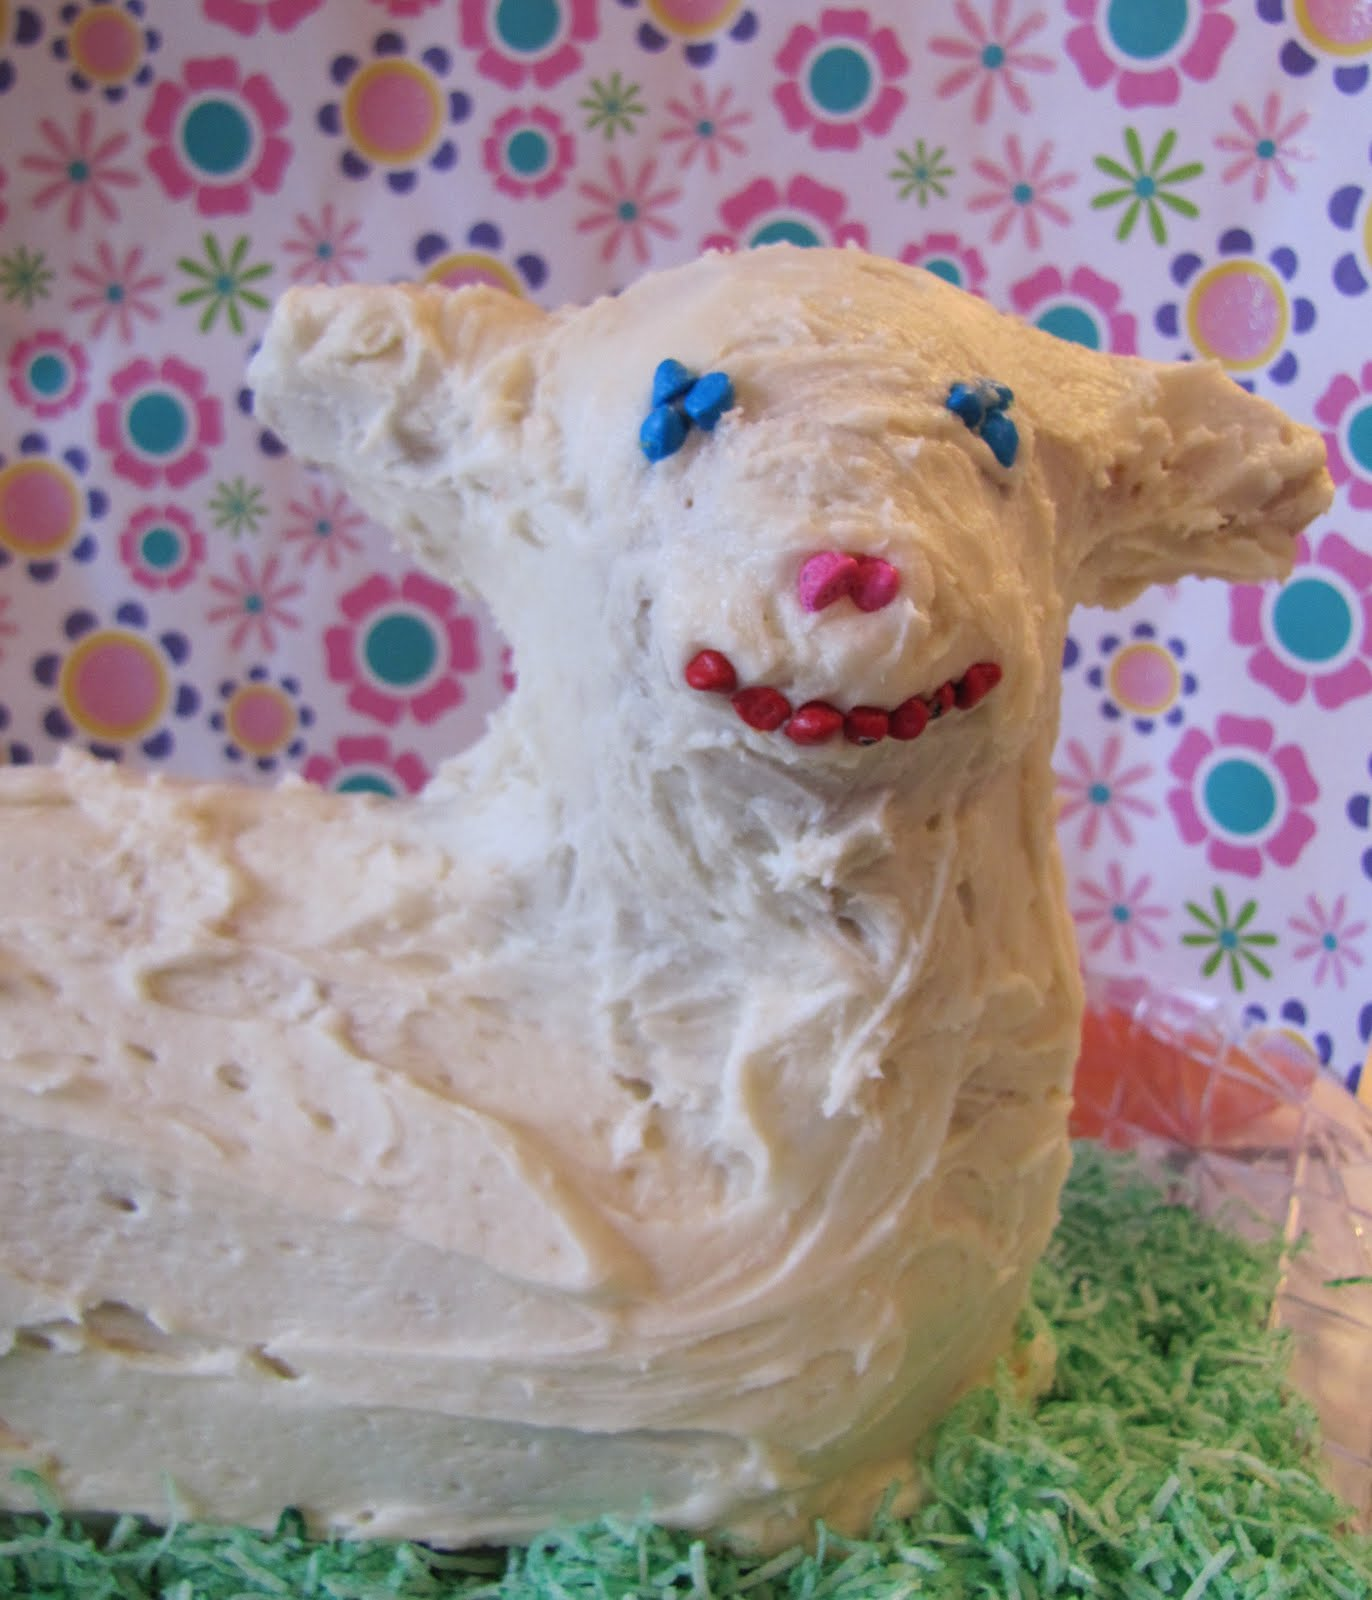 Adventures in Food: Easter Lamb Almond Pound Cake